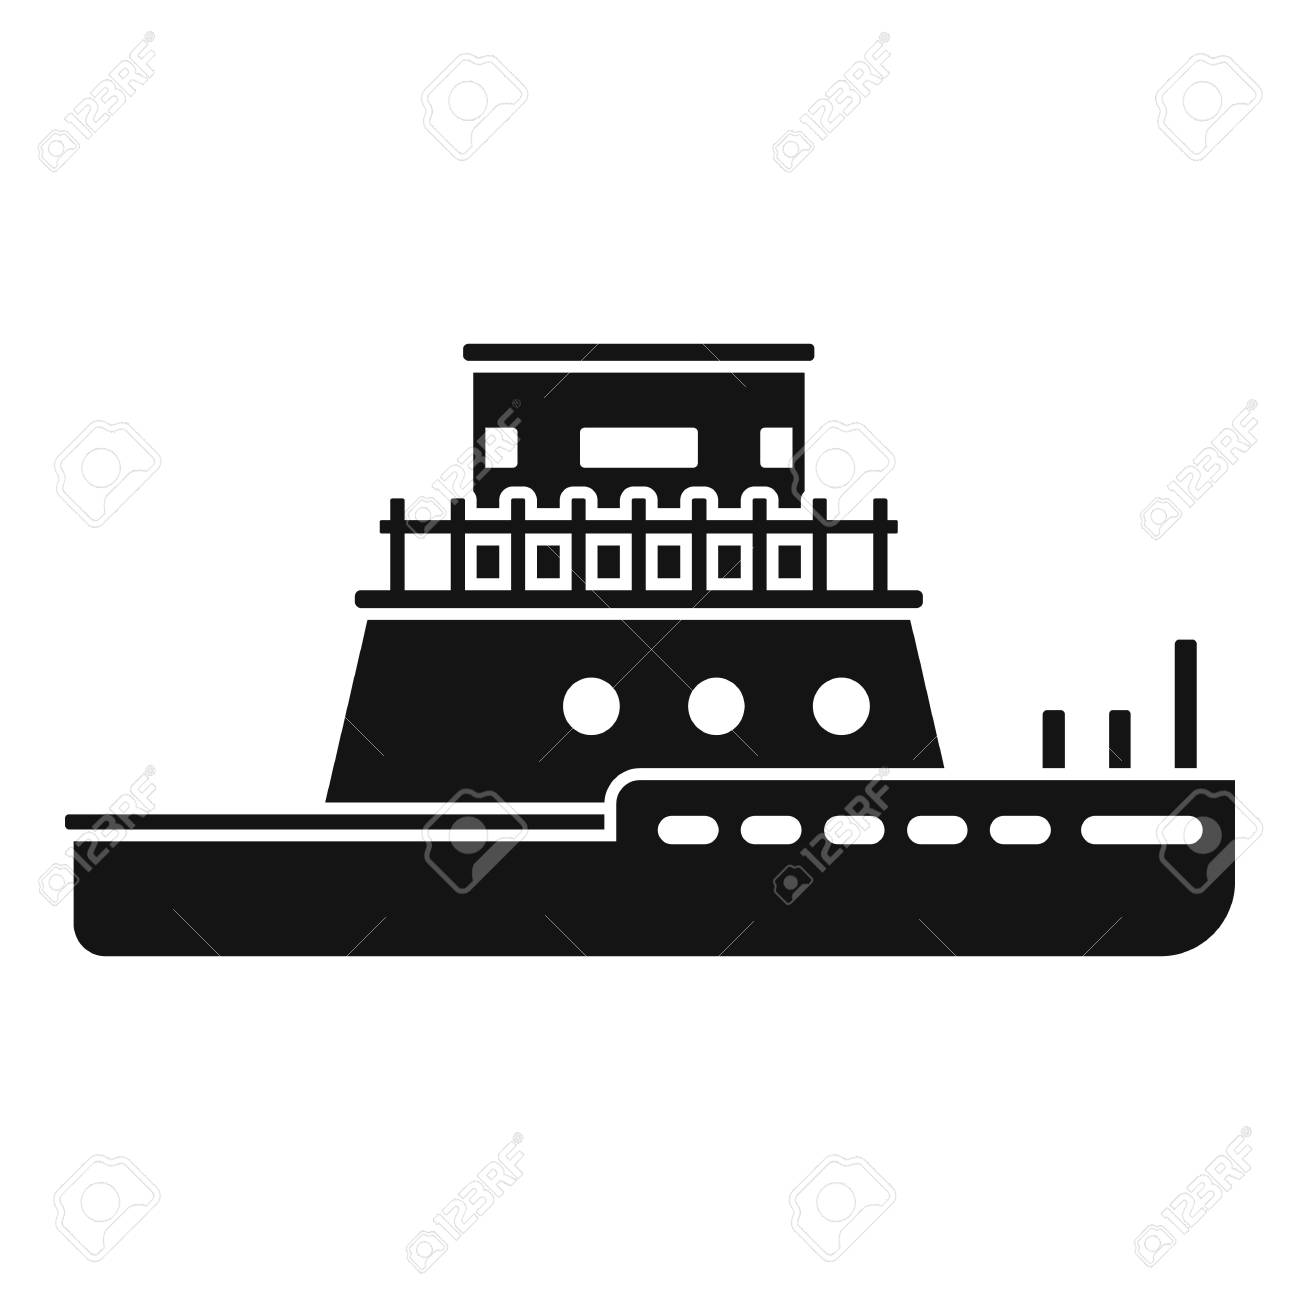 Tug boat icon, simple style